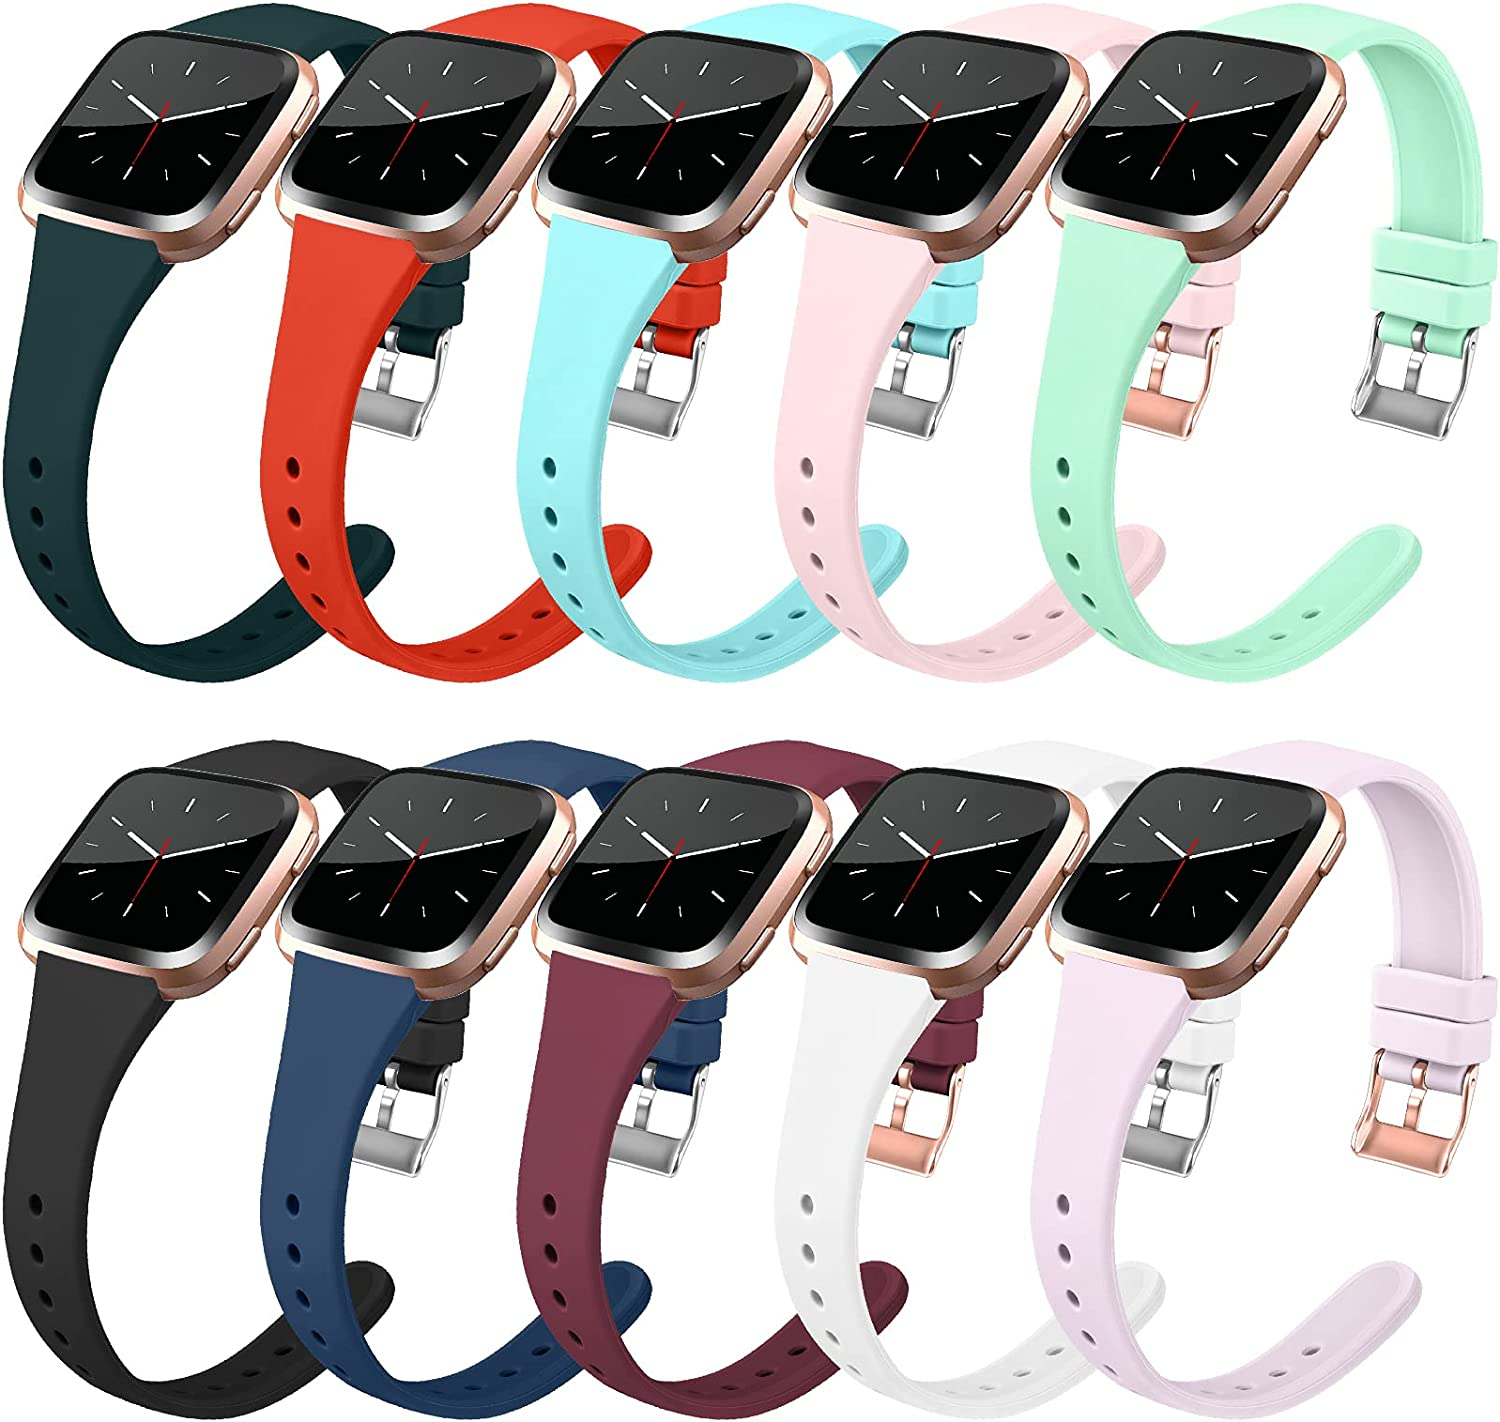 10 Pack Slim Bands Compatible with Fitbit Versa/Fitbit Versa 2/Fitbit Versa Lite for Women Men Soft Silicone Replacement Wristbands with Metal Buckle(Large, 10 Pack B)